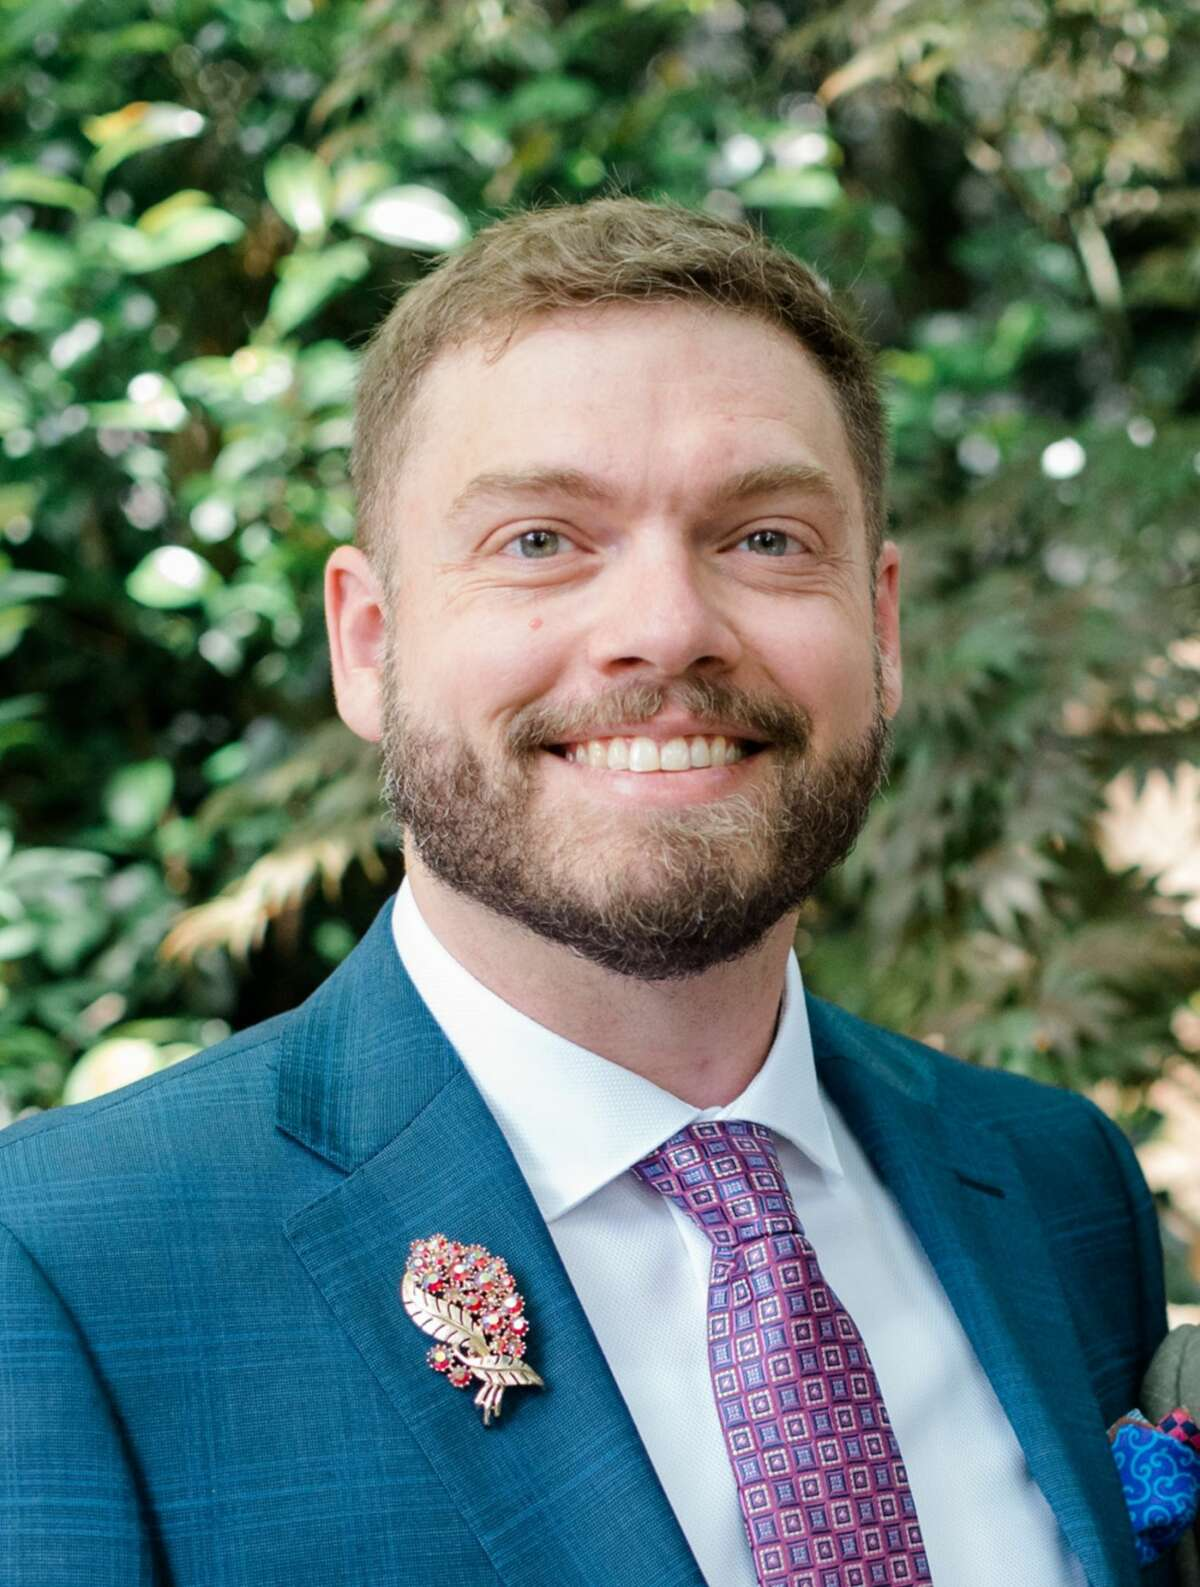 Daniel Butterworth will be the new executive director at RISSE. (Credits: RISSE)